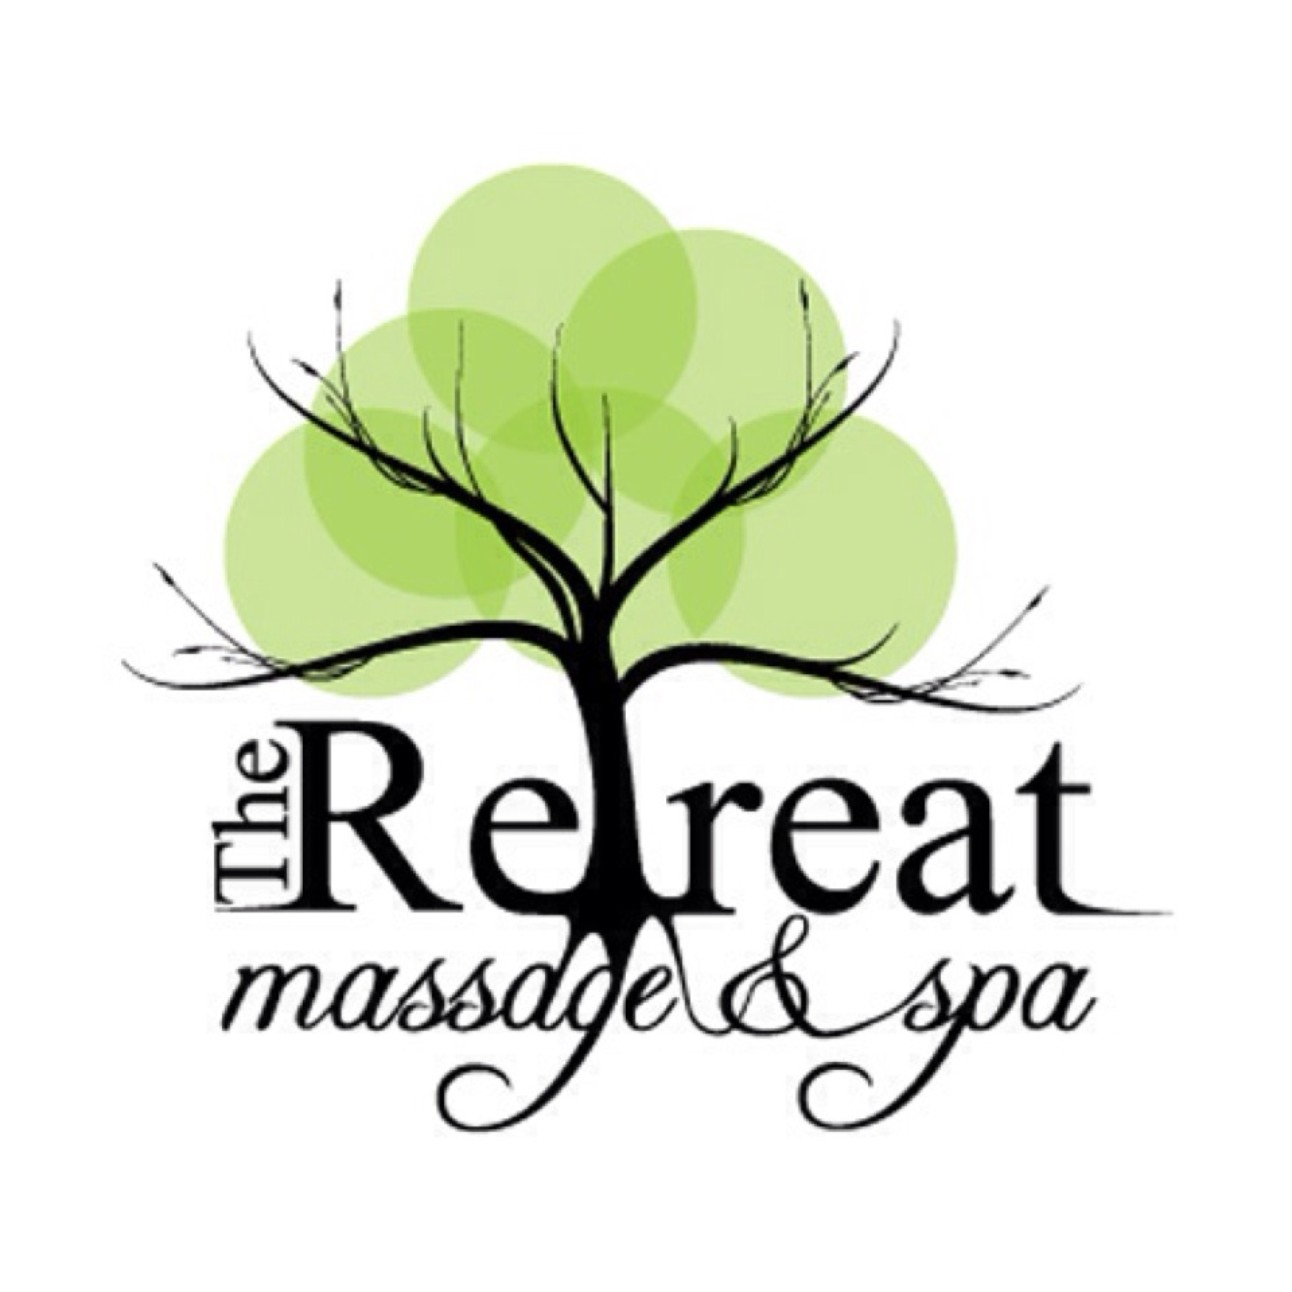 The Retreat Massage & Spa